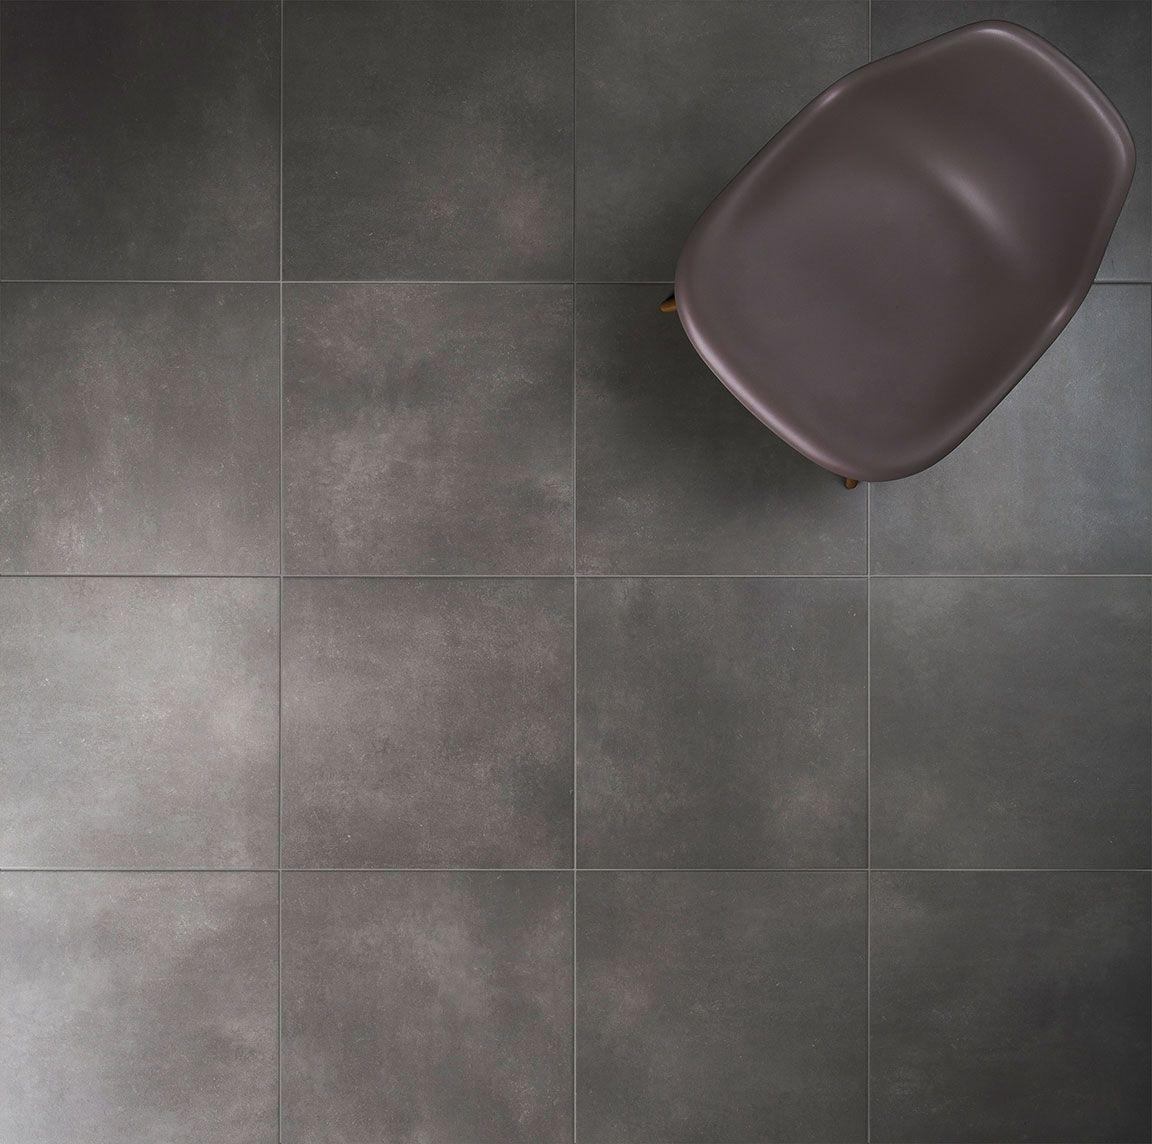 Tones porcelain floor tile 45 x 45cm anthracite matt pack of 6 find tones anthracite porcelain floor tile 6 pack at homebase visit your local store for the widest range of paint decorating products dailygadgetfo Images